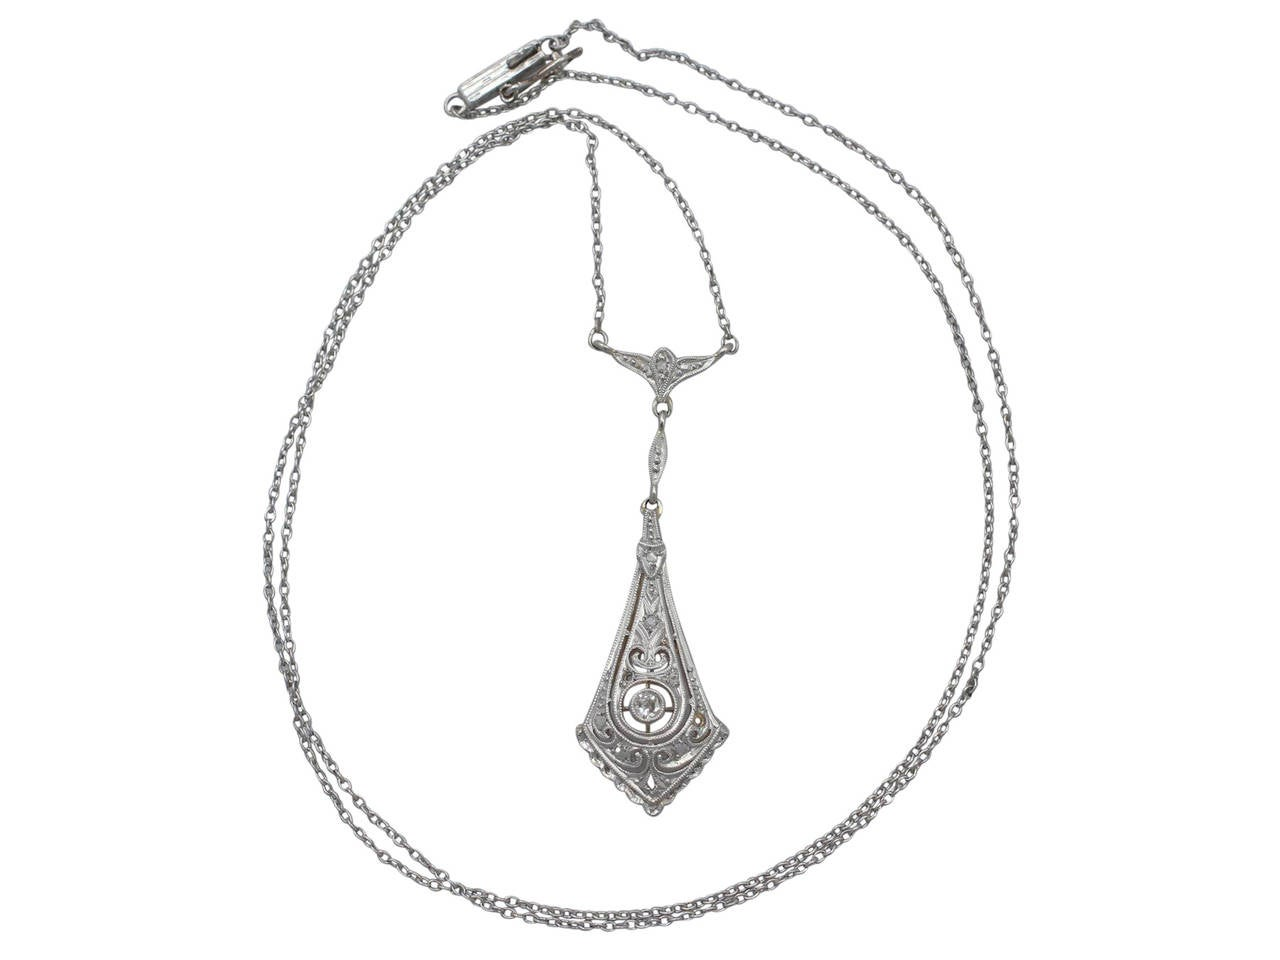 0.14 Ct Diamond and 14 k White Gold Pendant - Art Deco Style - Antique 2